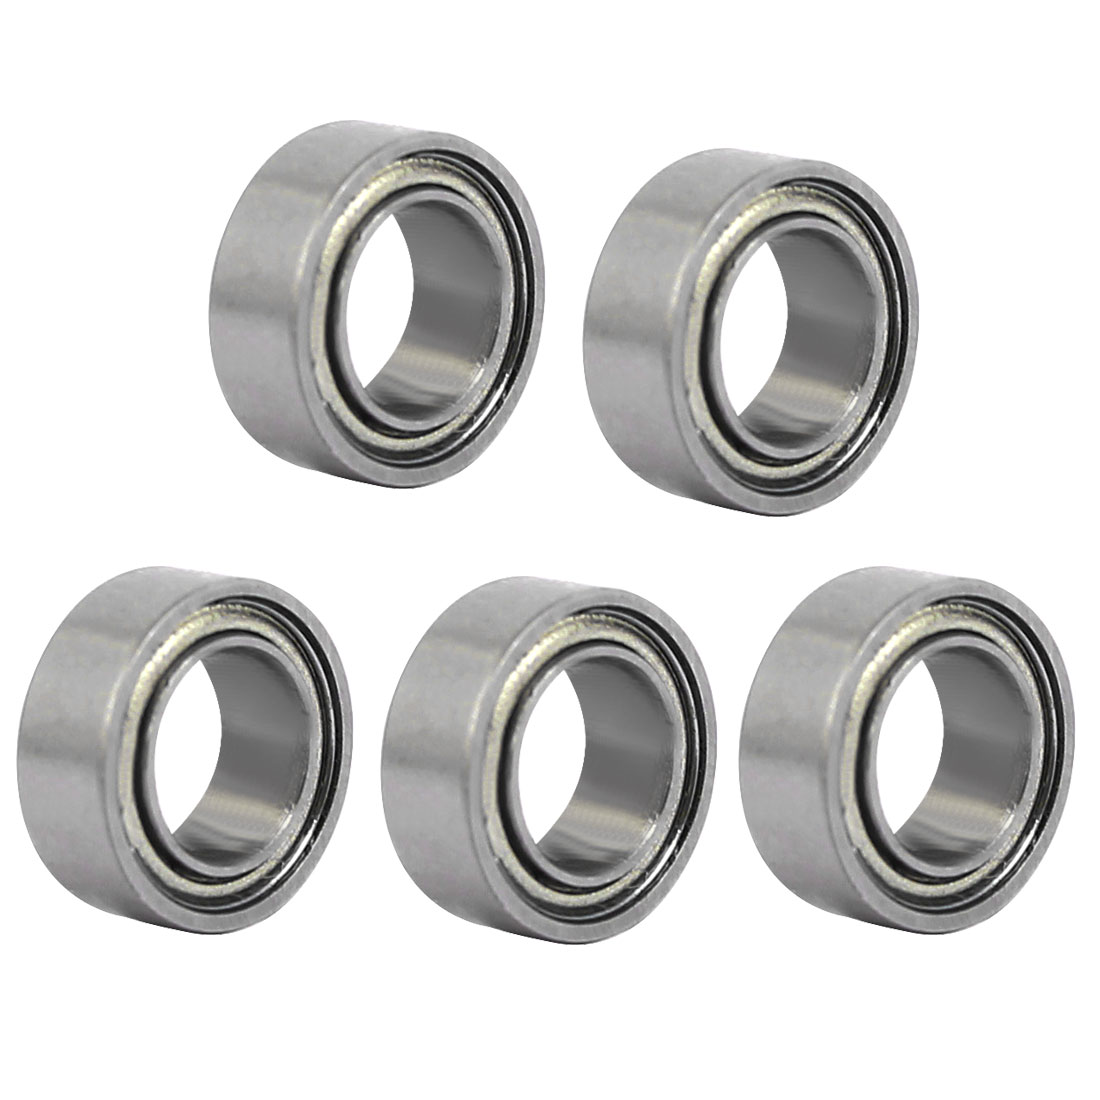 MR74ZZ 7mmx4mmx2.5mm Single Row Double Shielded Deep Groove Ball Bearings 5pcs